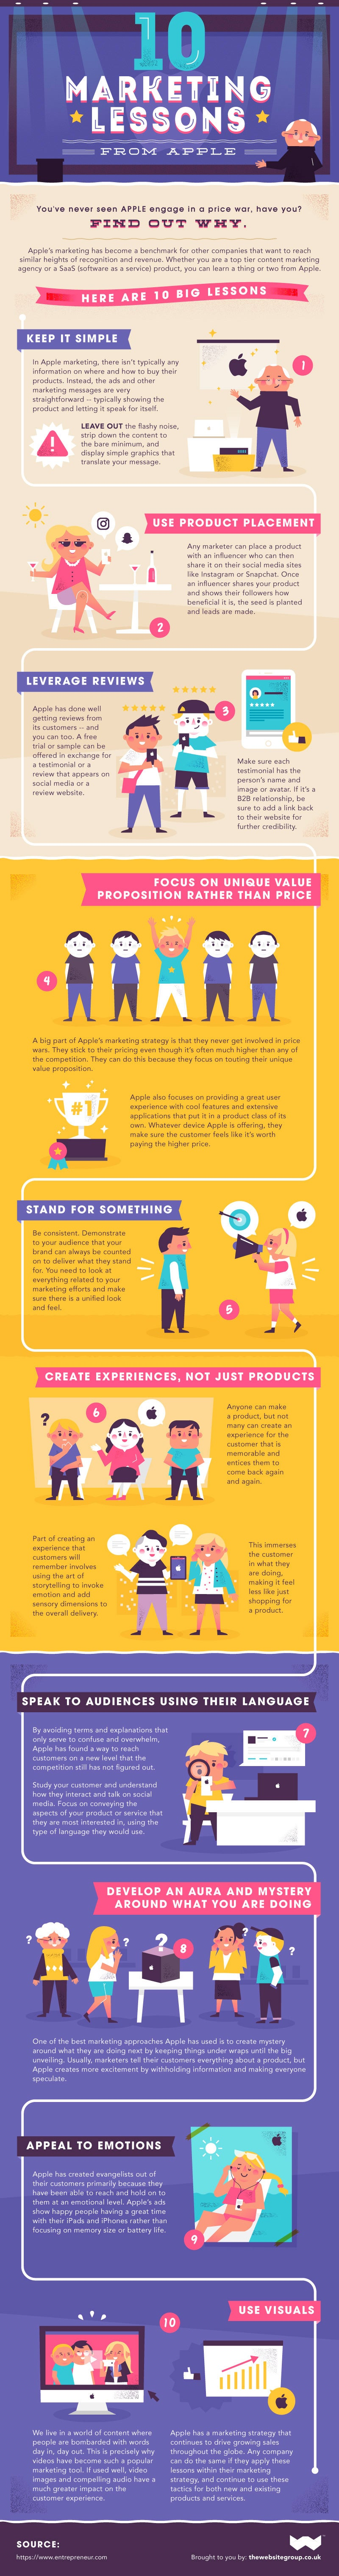 10 Marketing Lessons From Apple (Infographic)